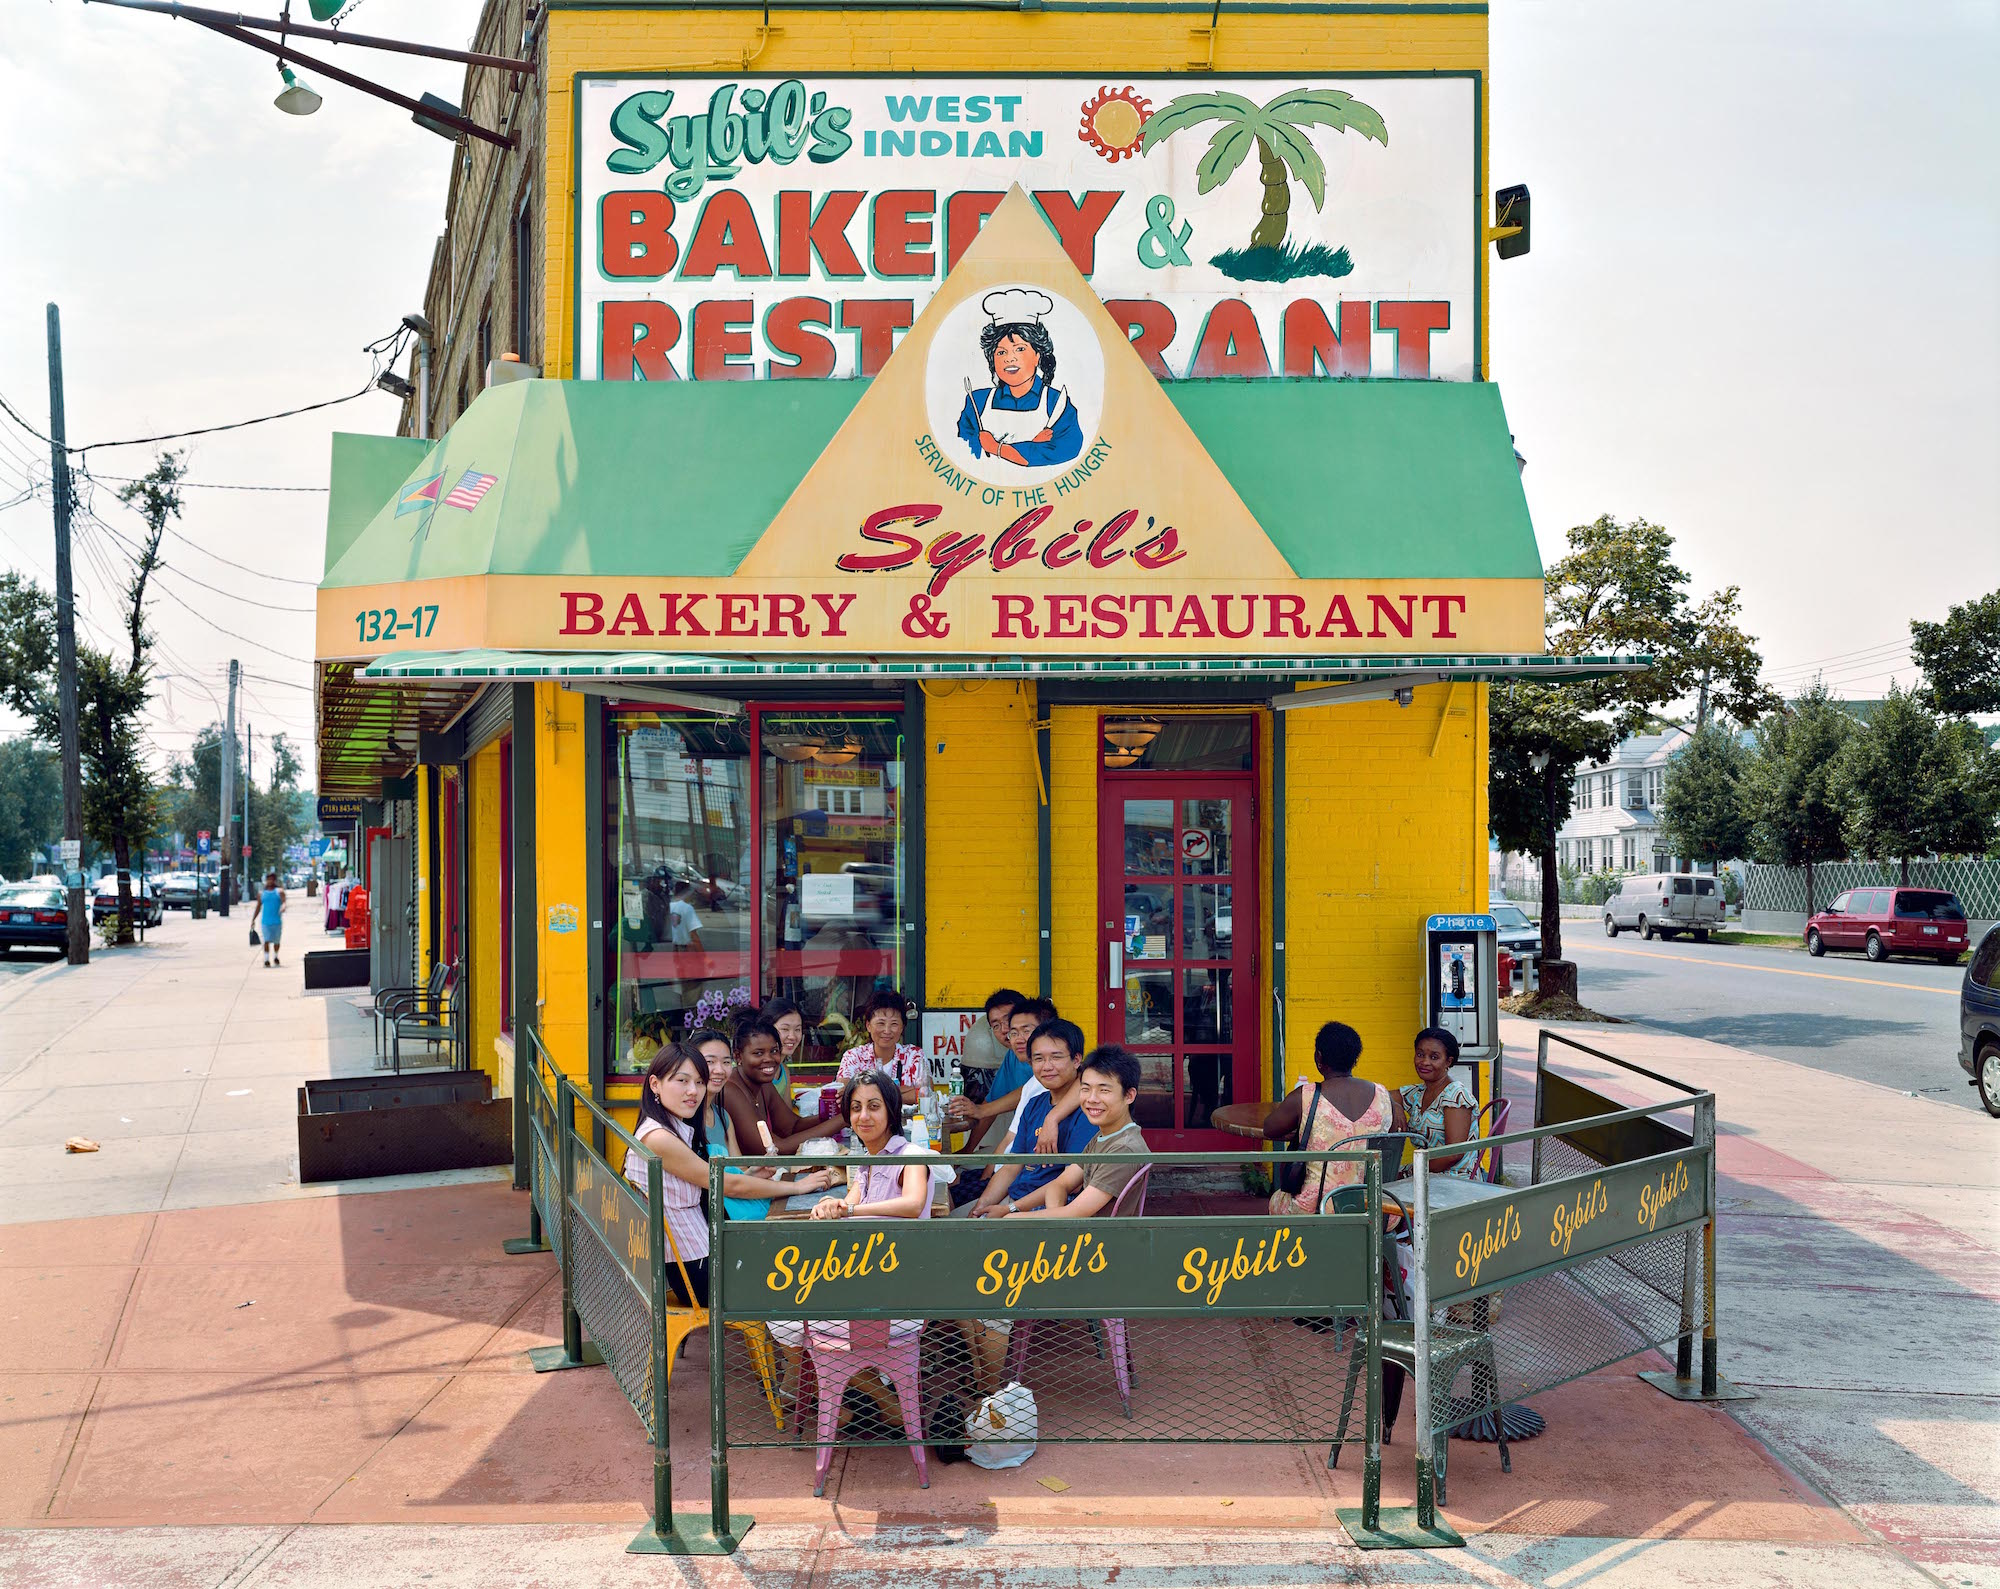 Sybil's West Indian Bakery and Restaurant – 132‐17 Liberty Avenue, Queens, July 2003, by Joel Sternfeld